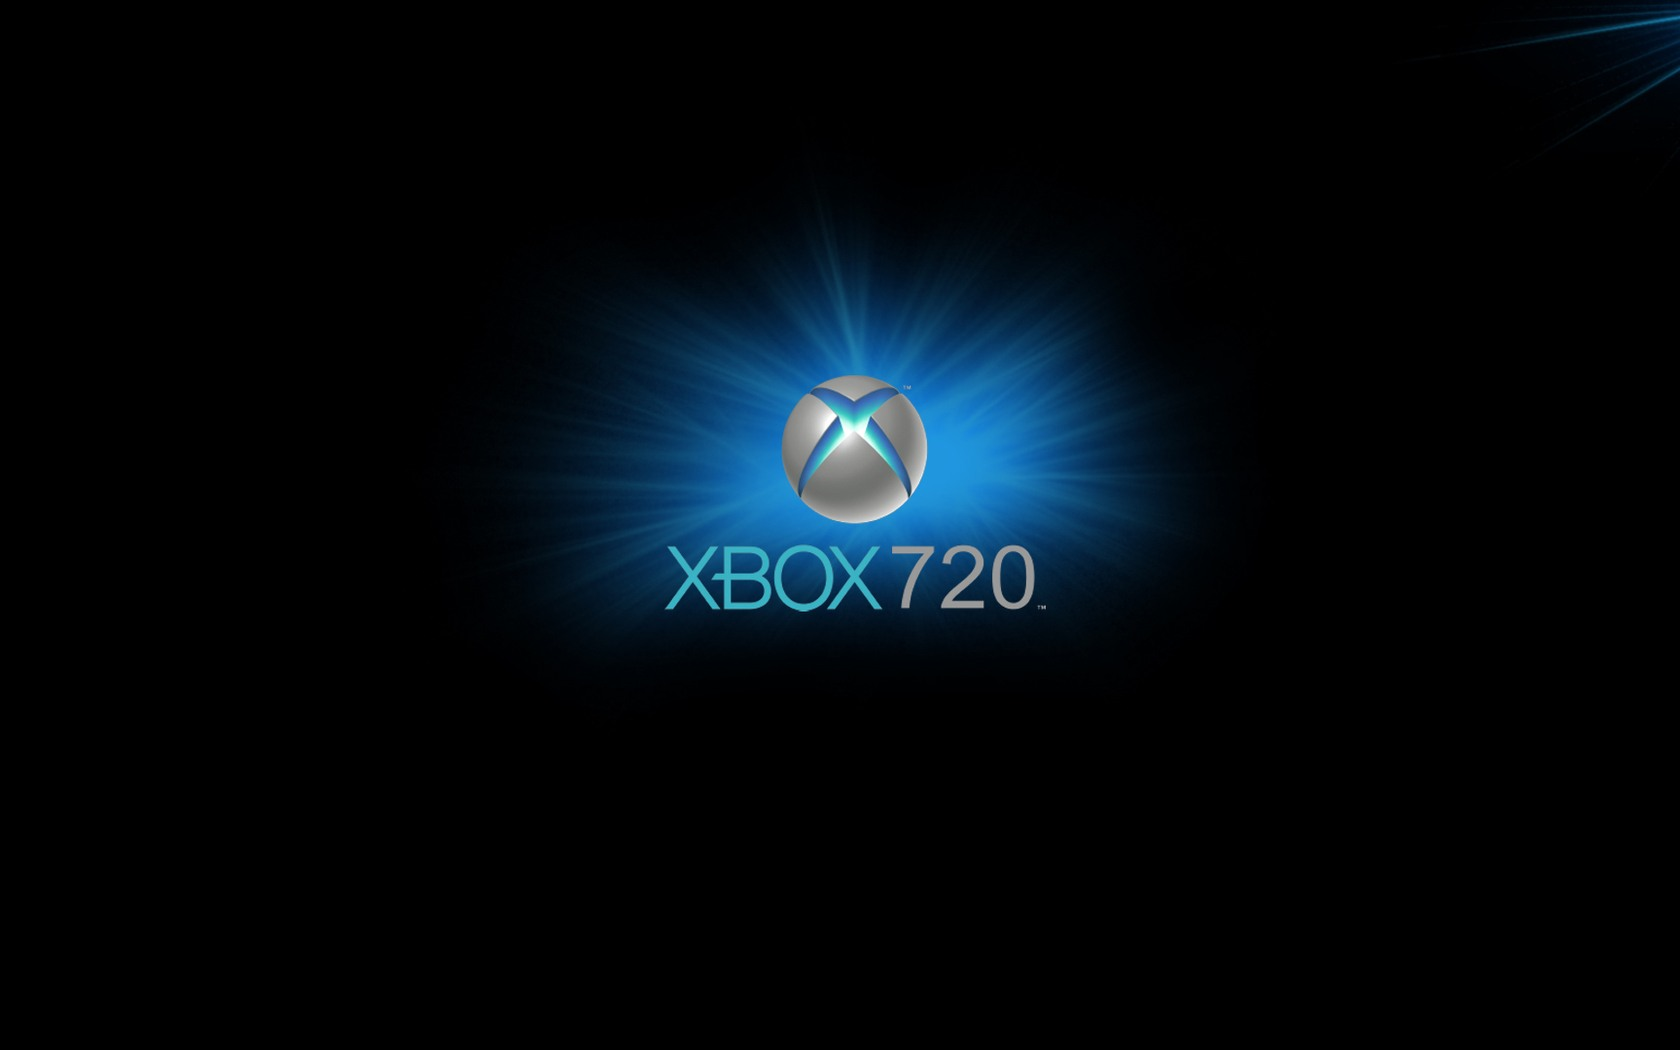 The Xbox 720 Demystified: We've Heard the Biggest Rumors, But How Likely Are They to be True?